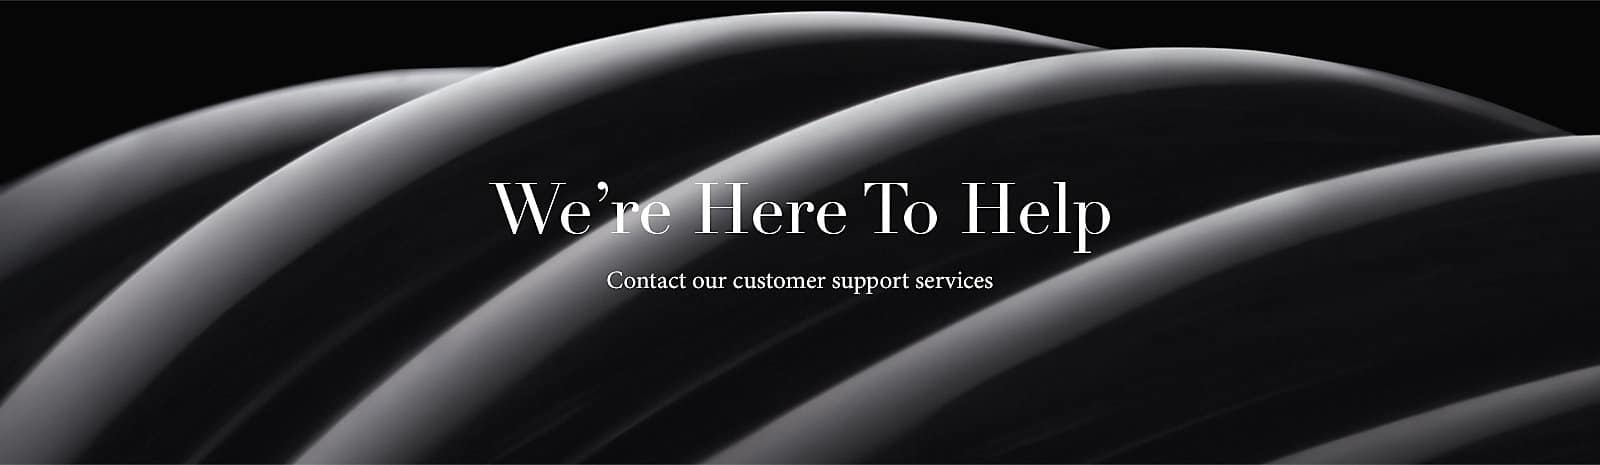 We're Here To Help - Contact our customer support services